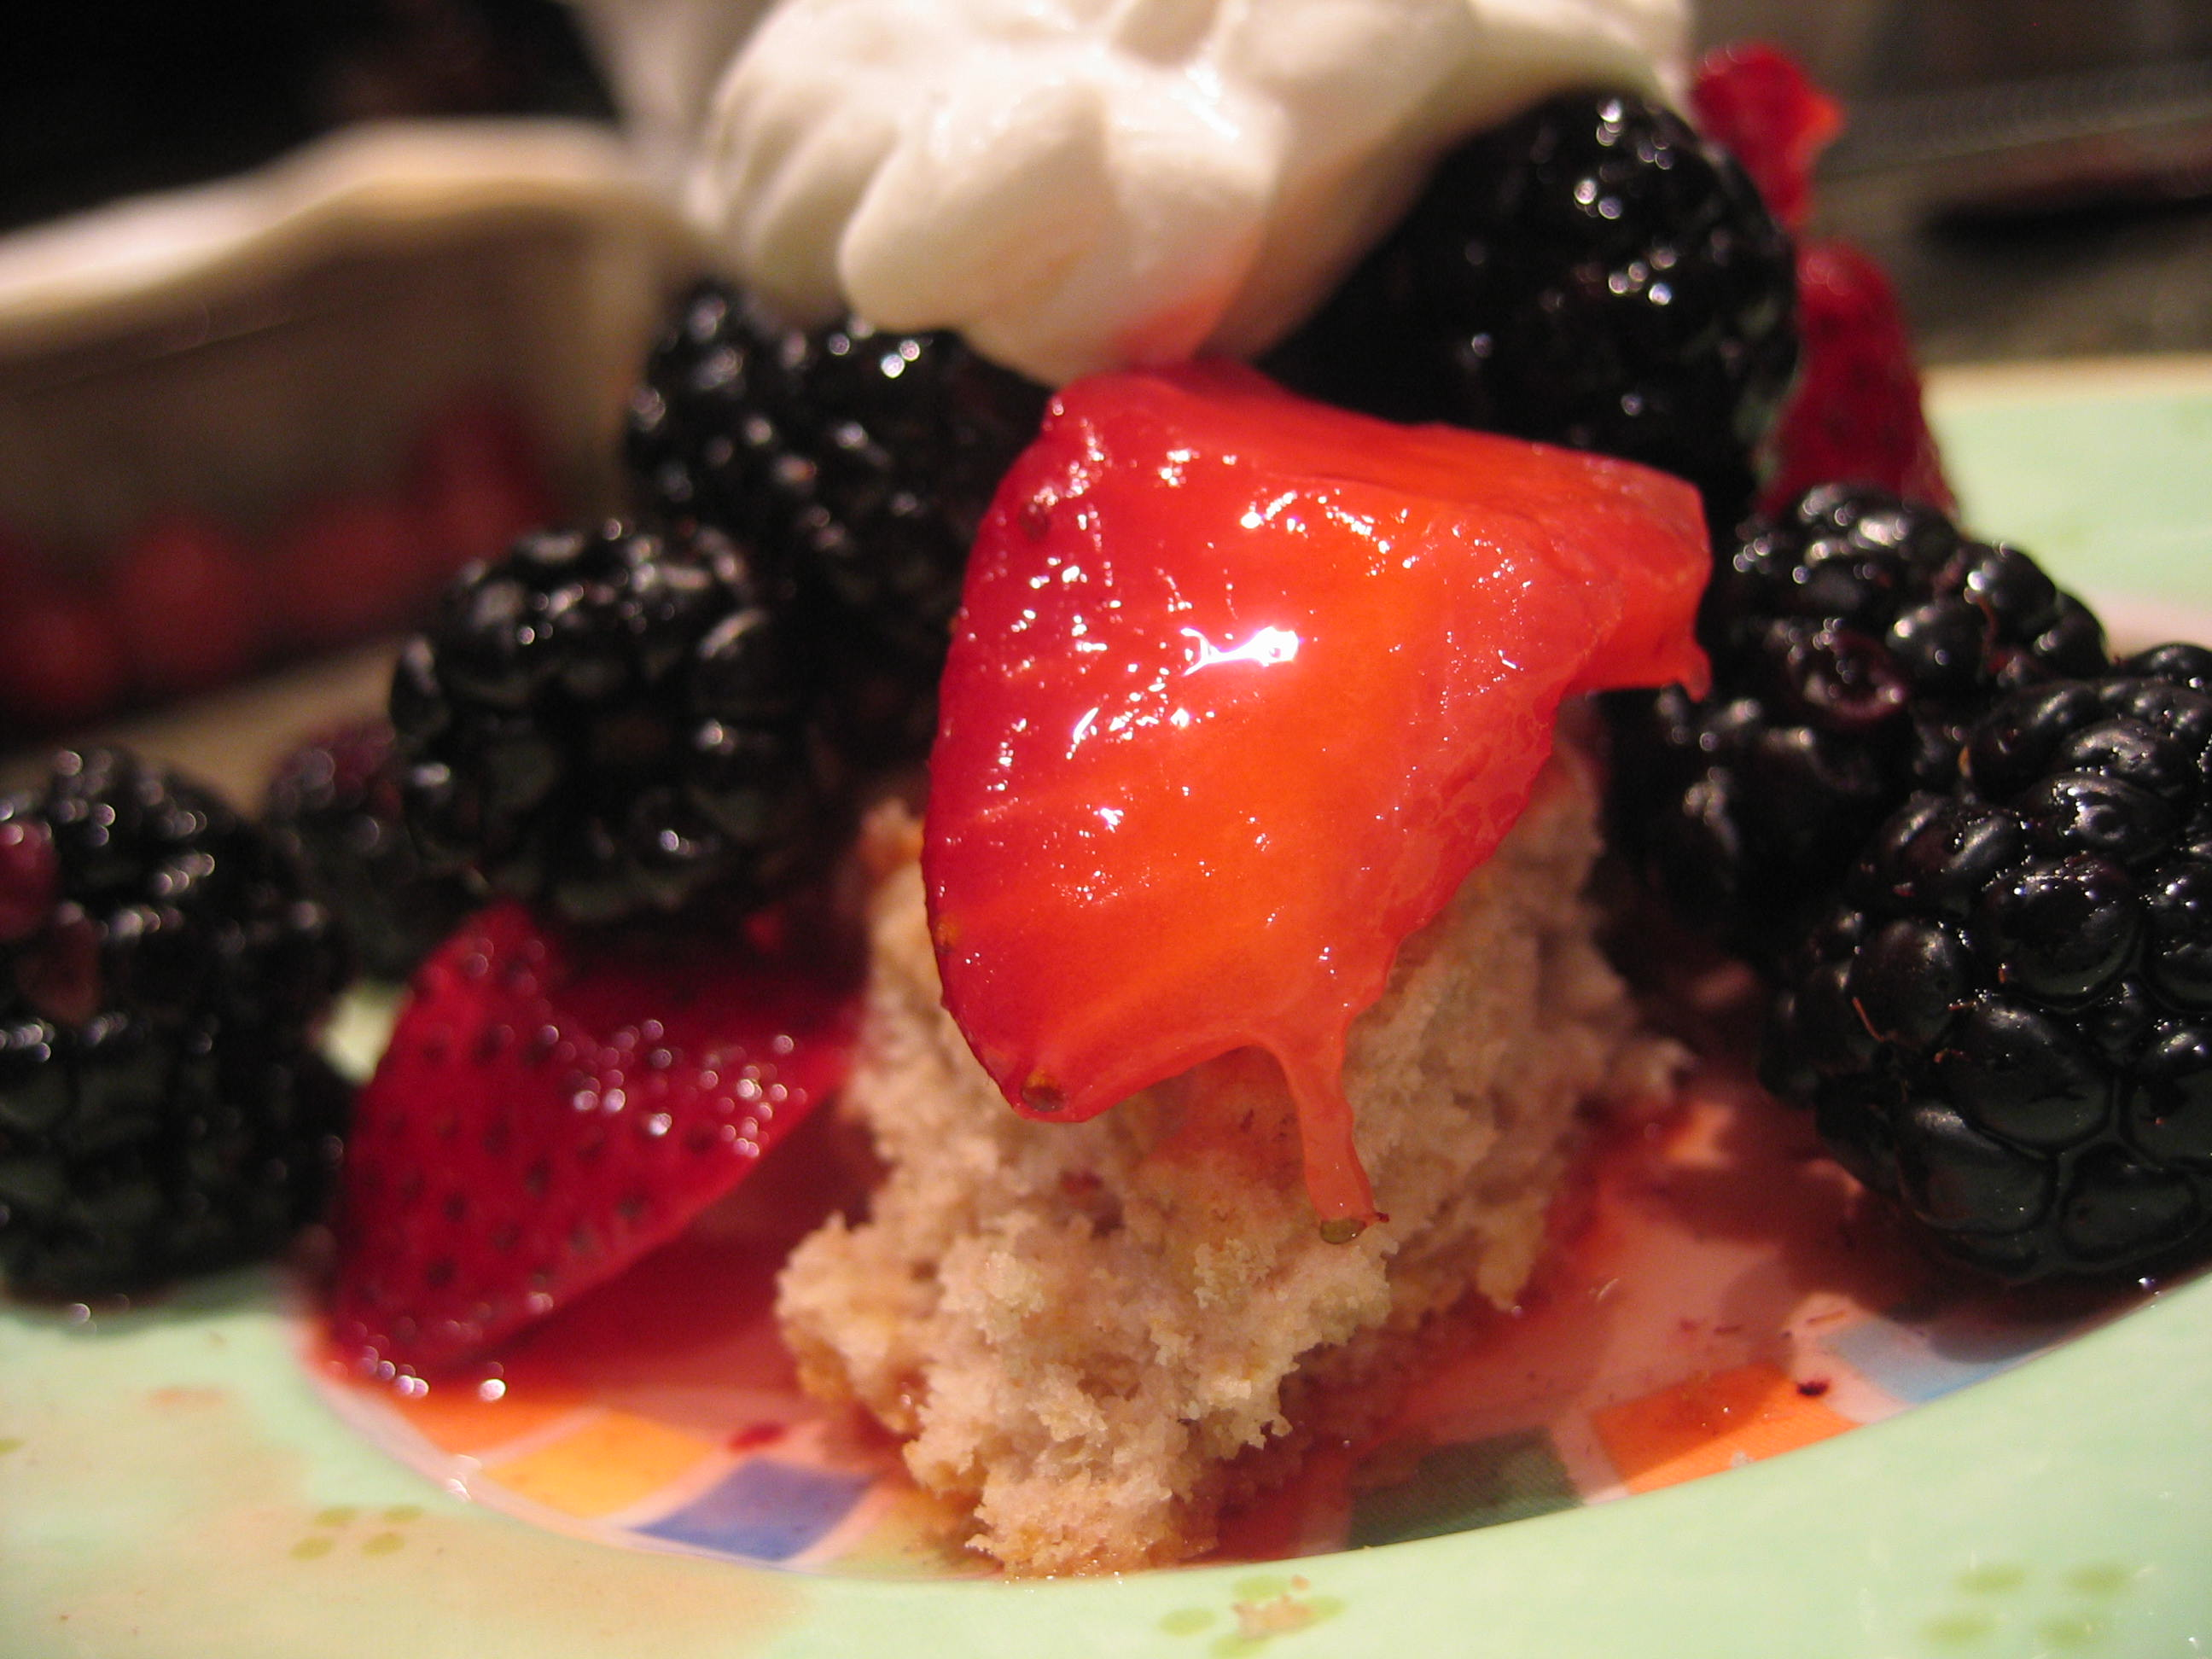 Blood Orange Scones Topped w/ Macerated Strawberries, Blackberries &amp; Hardly Sweetened Cream